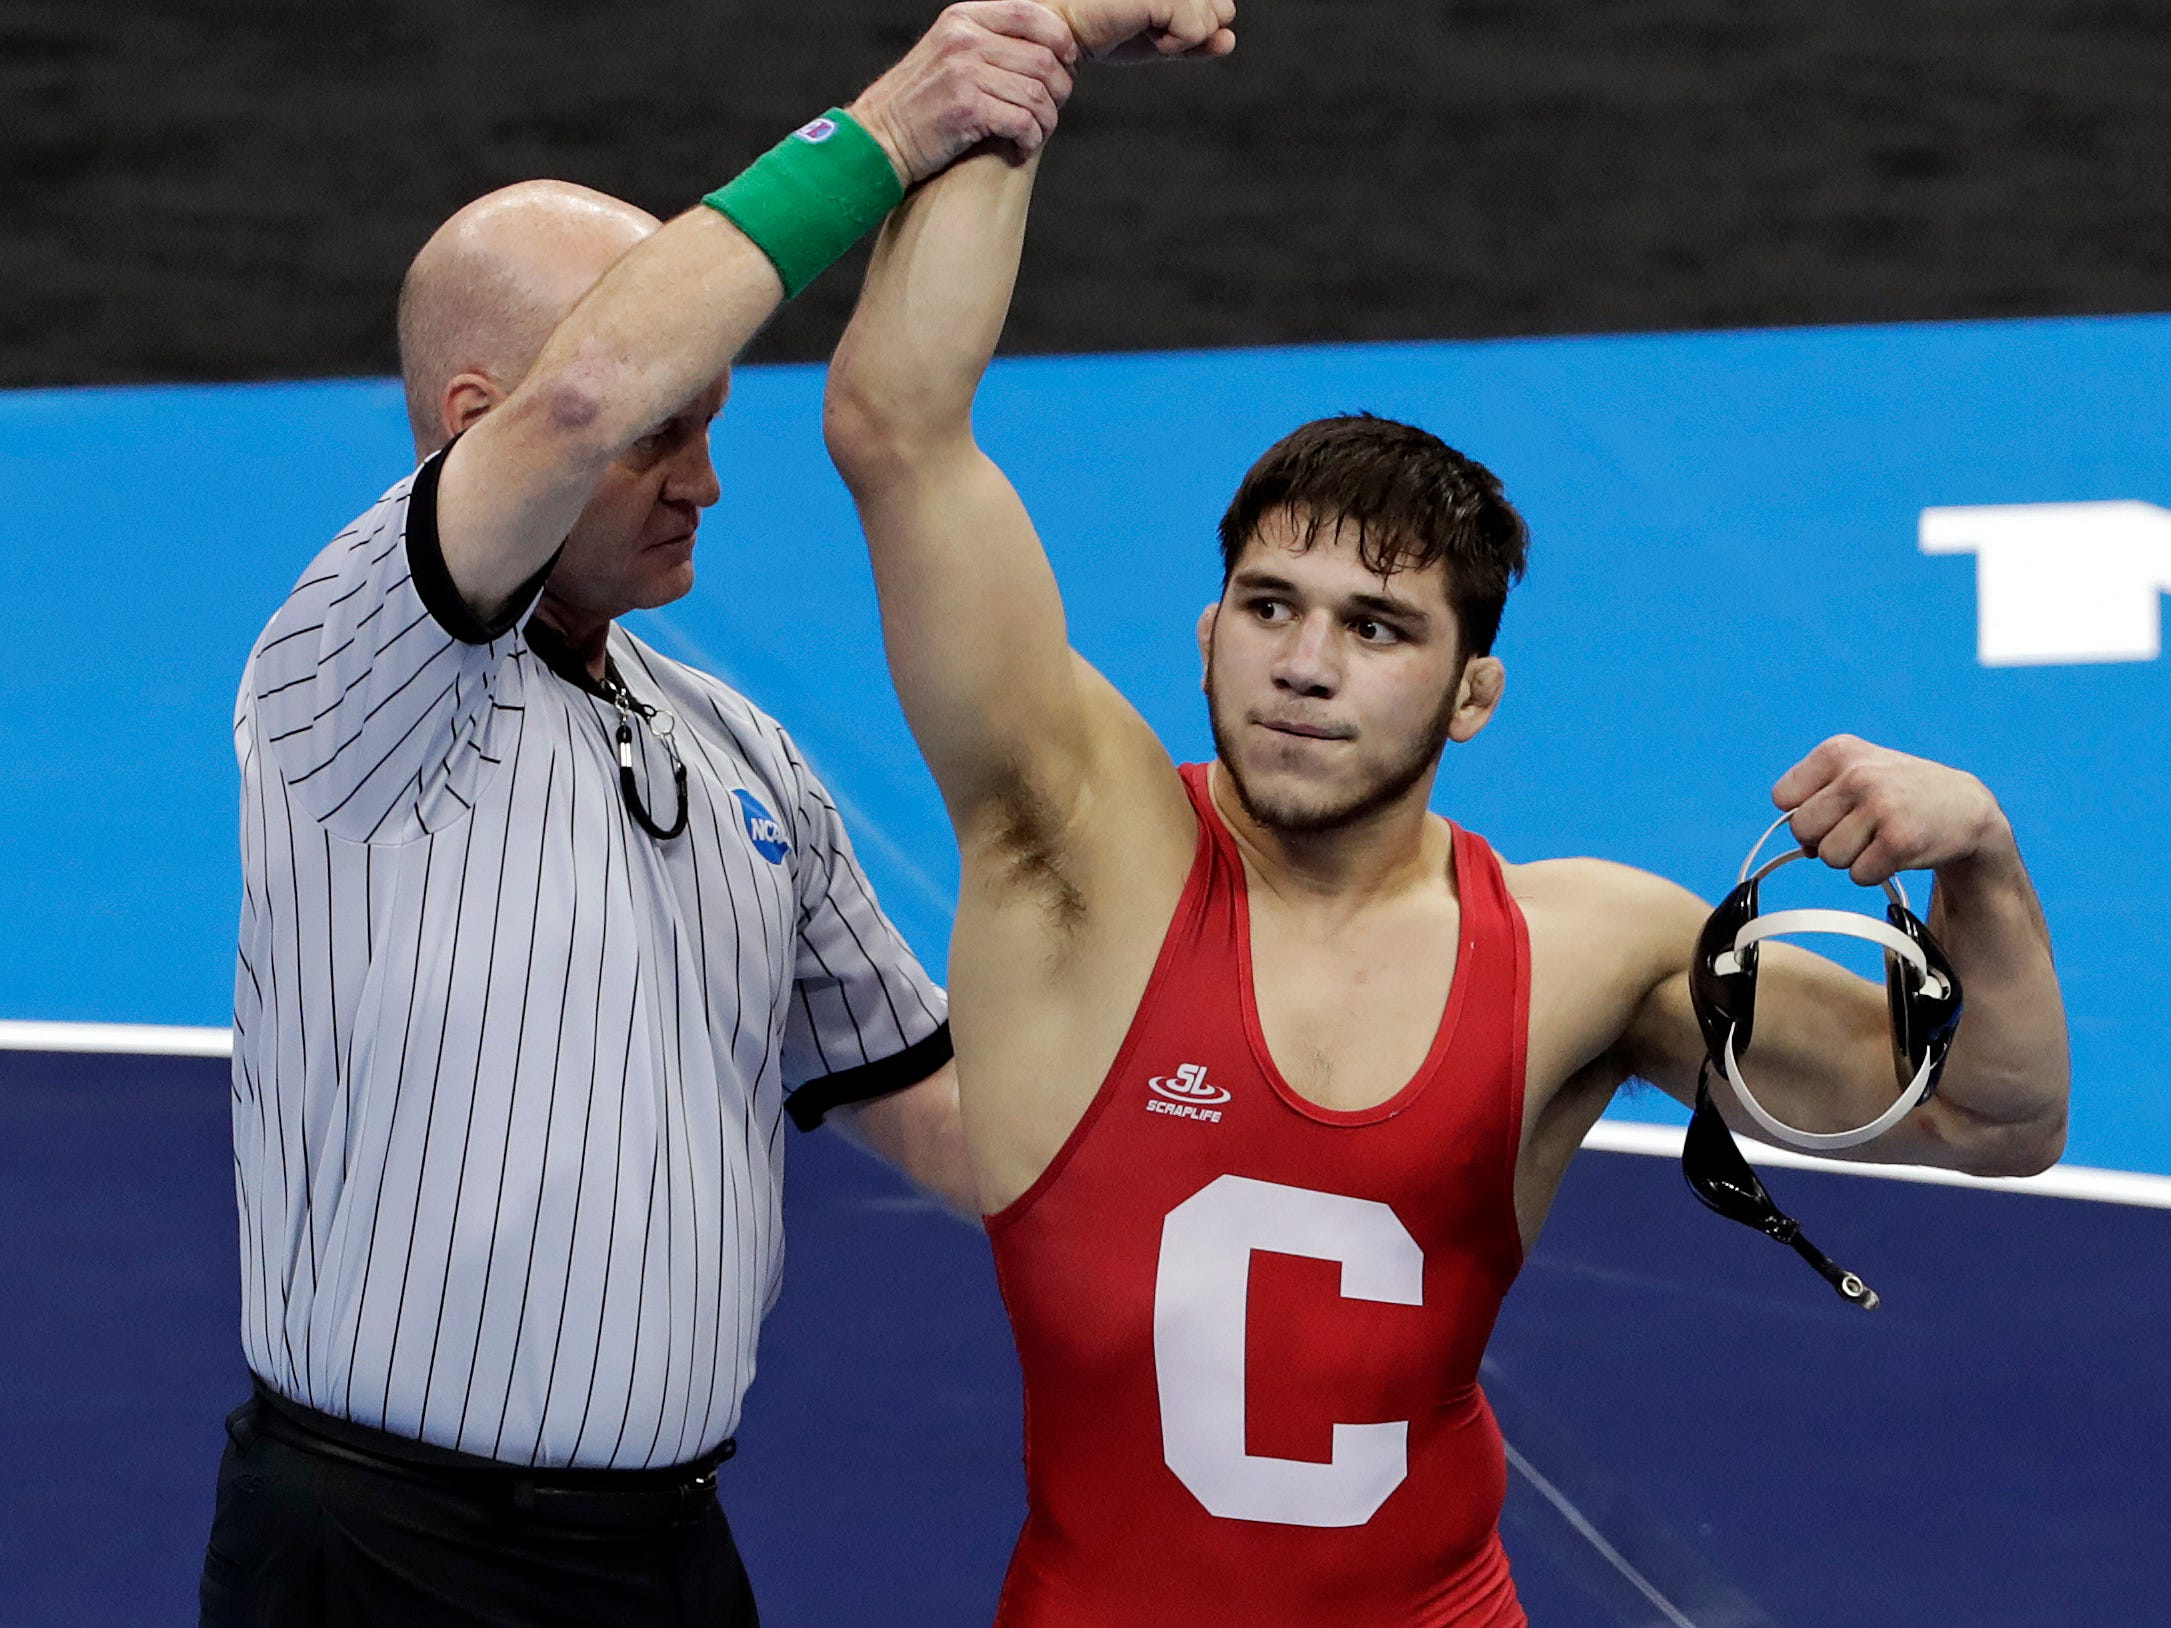 Cornell's Yianni Diakomihalis celebrates his win over Ohio State's Joey McKenna in their 141-pound match in the finals of the NCAA wrestling championships Saturday, March 23, 2019 in Pittsburgh. (AP Photo/Gene J. Puskar)